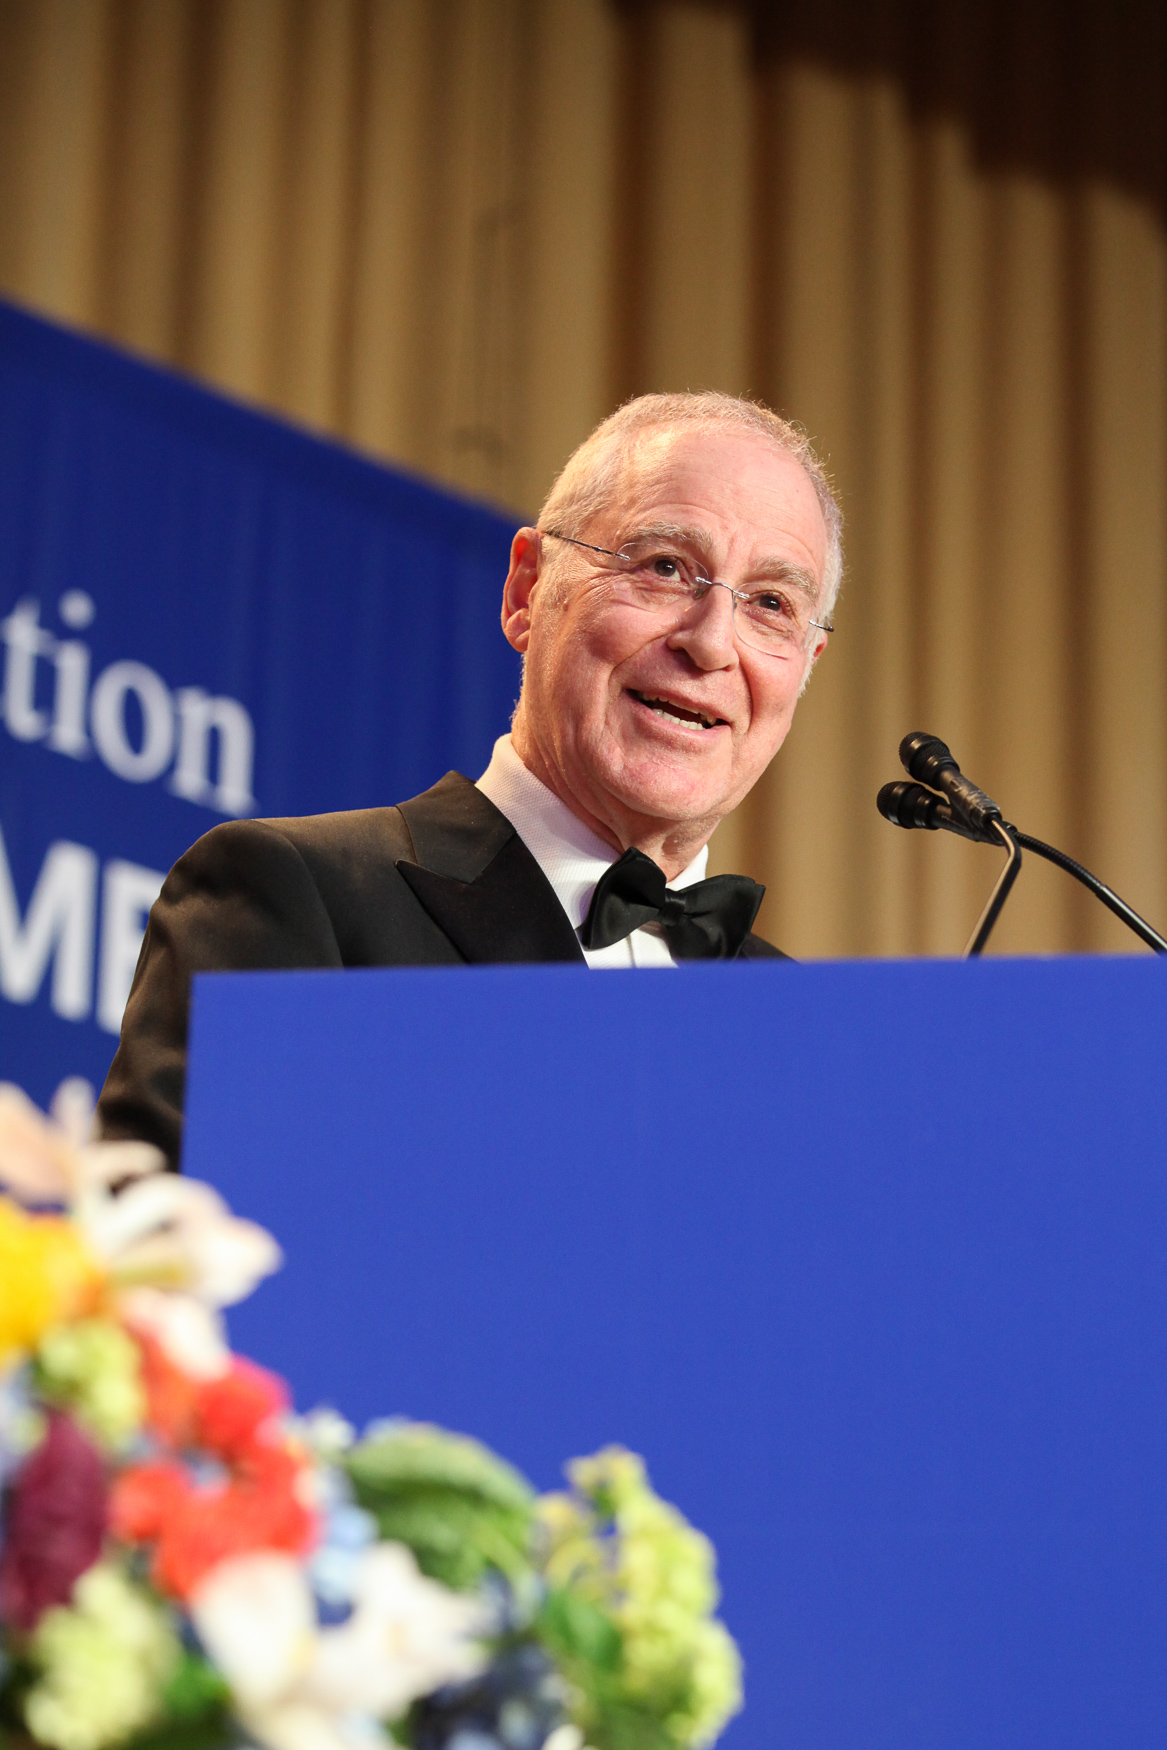 The 2019 White House Correspondents' Dinner may not have been packed with the celebrities of years past, but the focus was squarely on the journalists.{ }Olivier Knox, the president of the White House Correspondents' Association, kicked off the remarks by talking about the real threats journalists face at home and abroad, calling special attention to the kidnapping of freelance journalist Austin Tice, who was last seen reporting in Syria in 2012. The evening also included honoring the work of journalists who cover the White House and awarding select student journalists who show a lot of promise. Perhaps the biggest surprise of the night was the remarks from historian Ron Chernow. Although Chernow replaced the traditional comedy entertainment, he served up plenty of pointed jokes, while still offering some history lessons about the relationship between the press and politics. (Amanda Andrade-Rhoades/DC Refined)